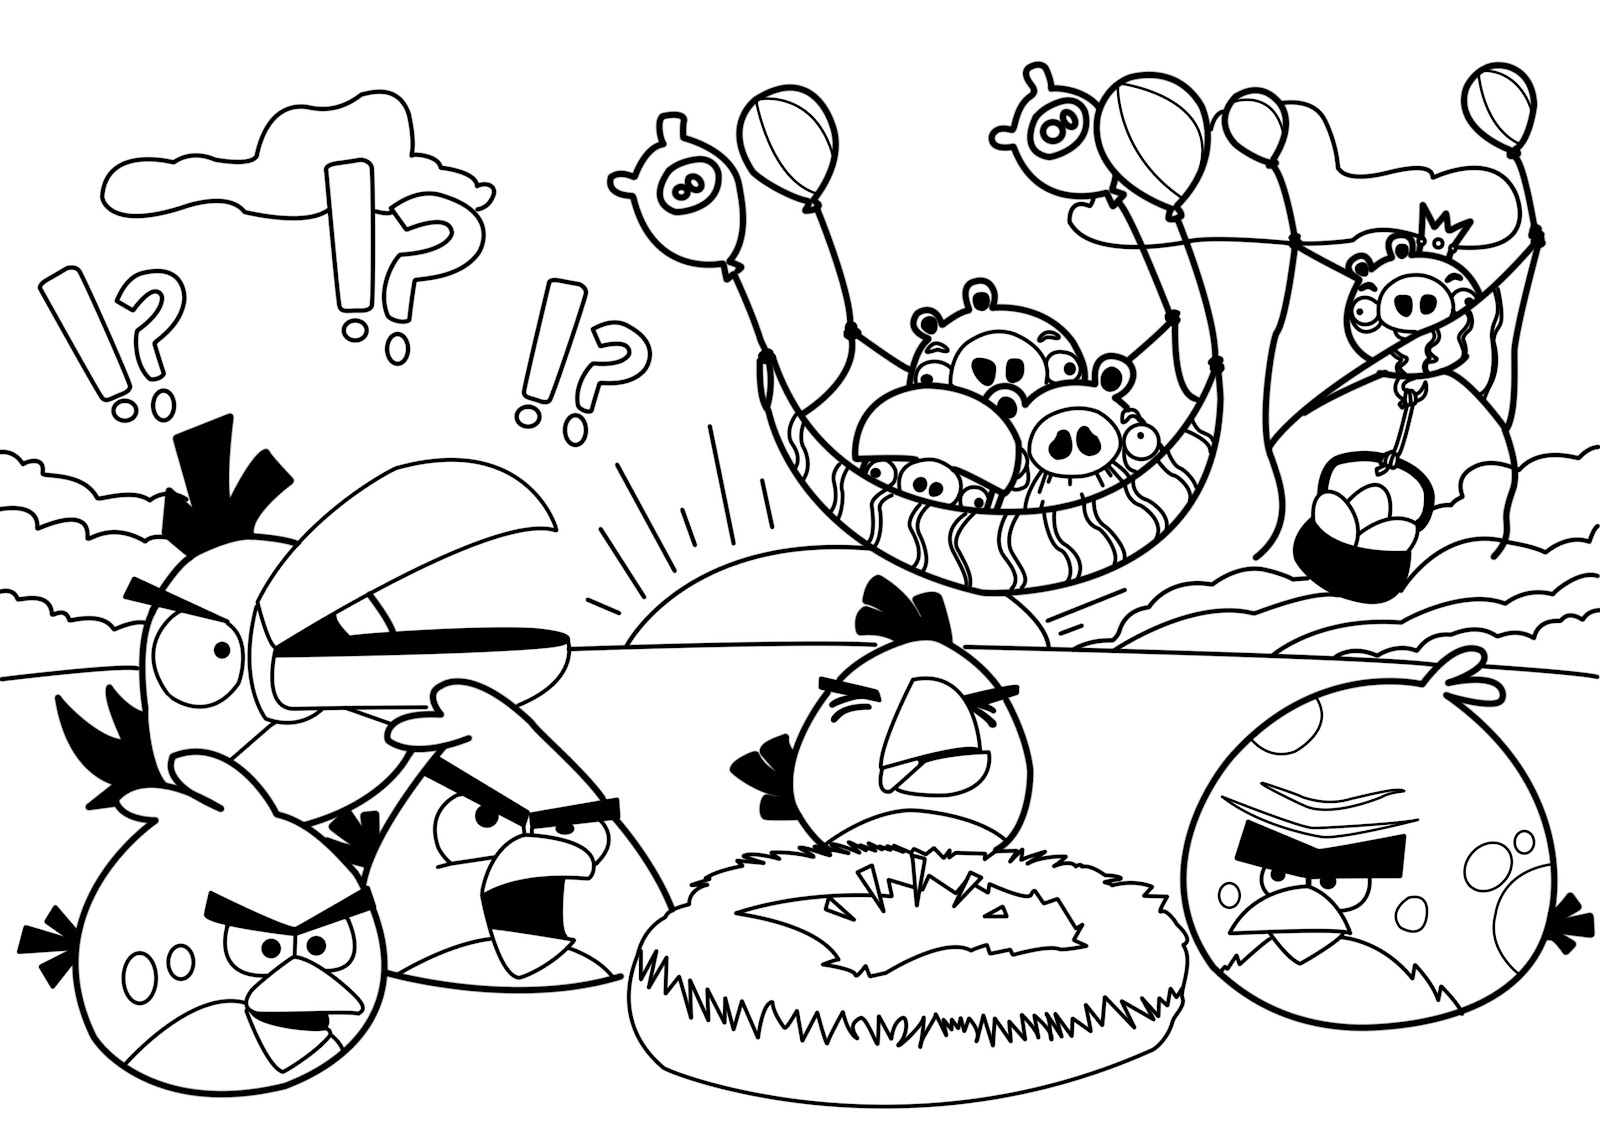 takis coloring pages - photo#39